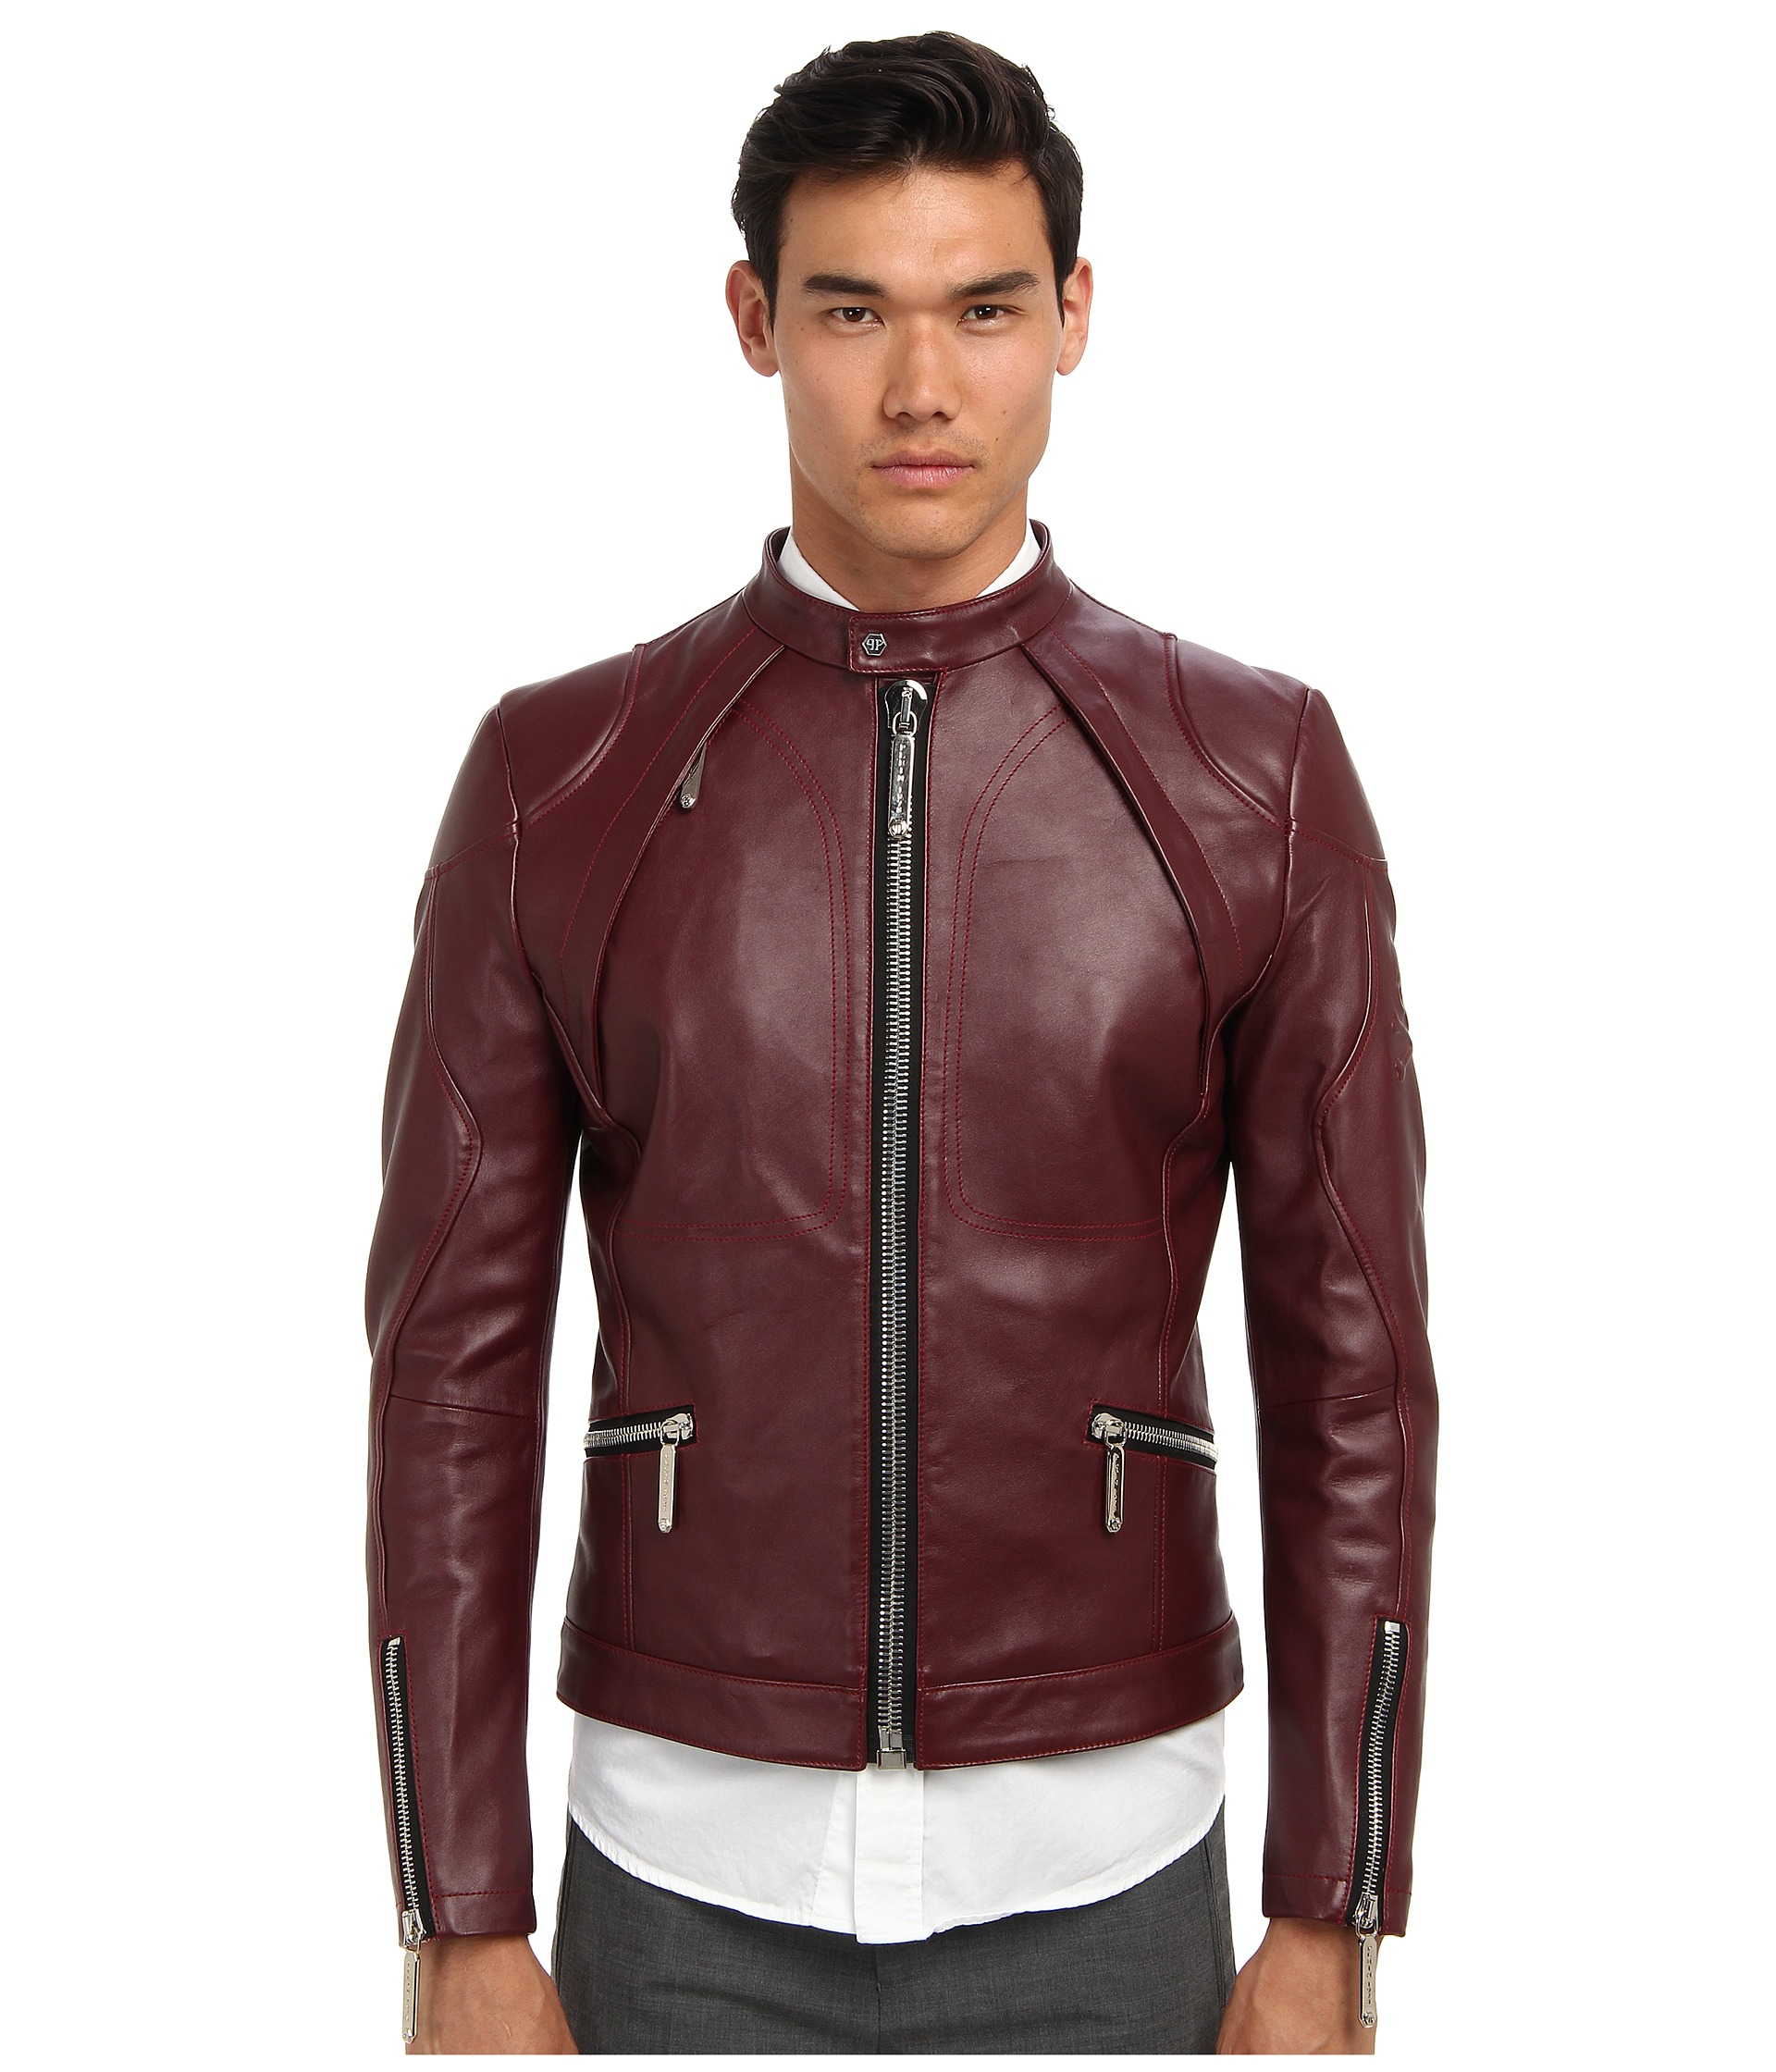 philipp plein force leather jacket in red for men lyst. Black Bedroom Furniture Sets. Home Design Ideas